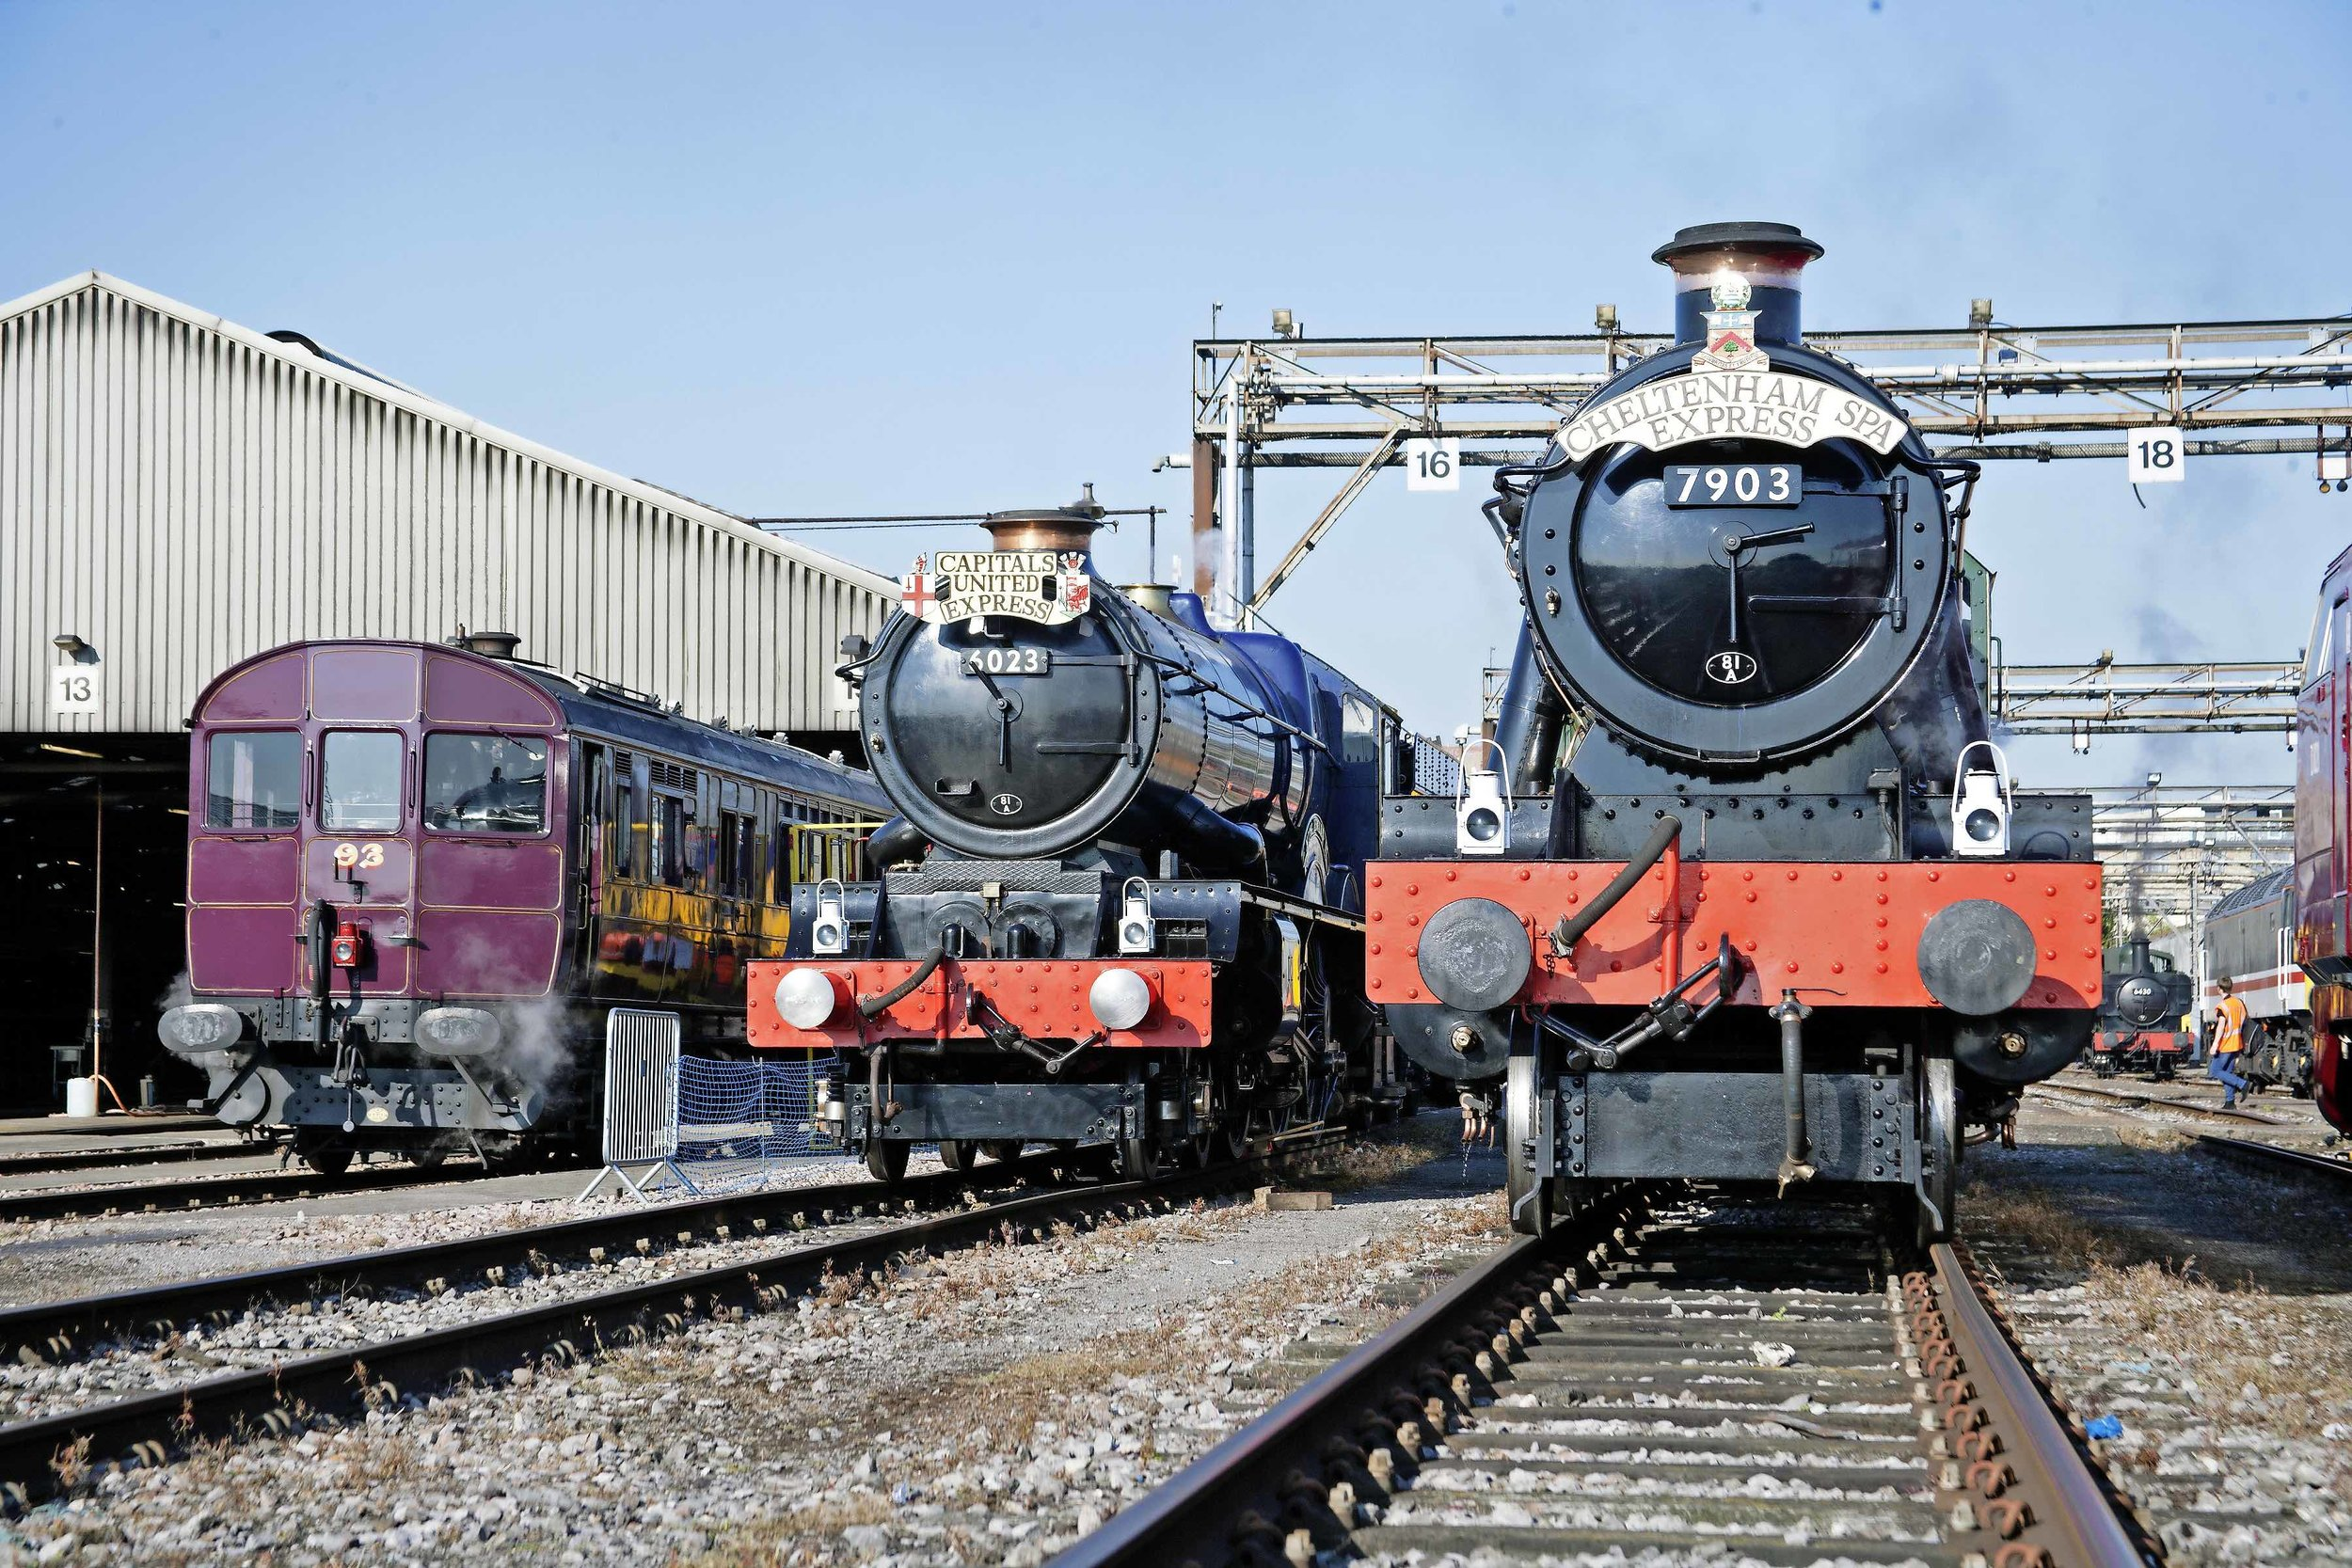 Soon to be reunited at the Gloucestershire Warwickshire Railway's 'Cotswold Festival of Steam', 'King' No. 6023  King Edward II  stands alongside 'Modified Hall' No. 7903  Foremarke Hall  and Churchward Railmotor No. 93 at the Old Oak Common open day on September 2. NICK BRODRICK/SR